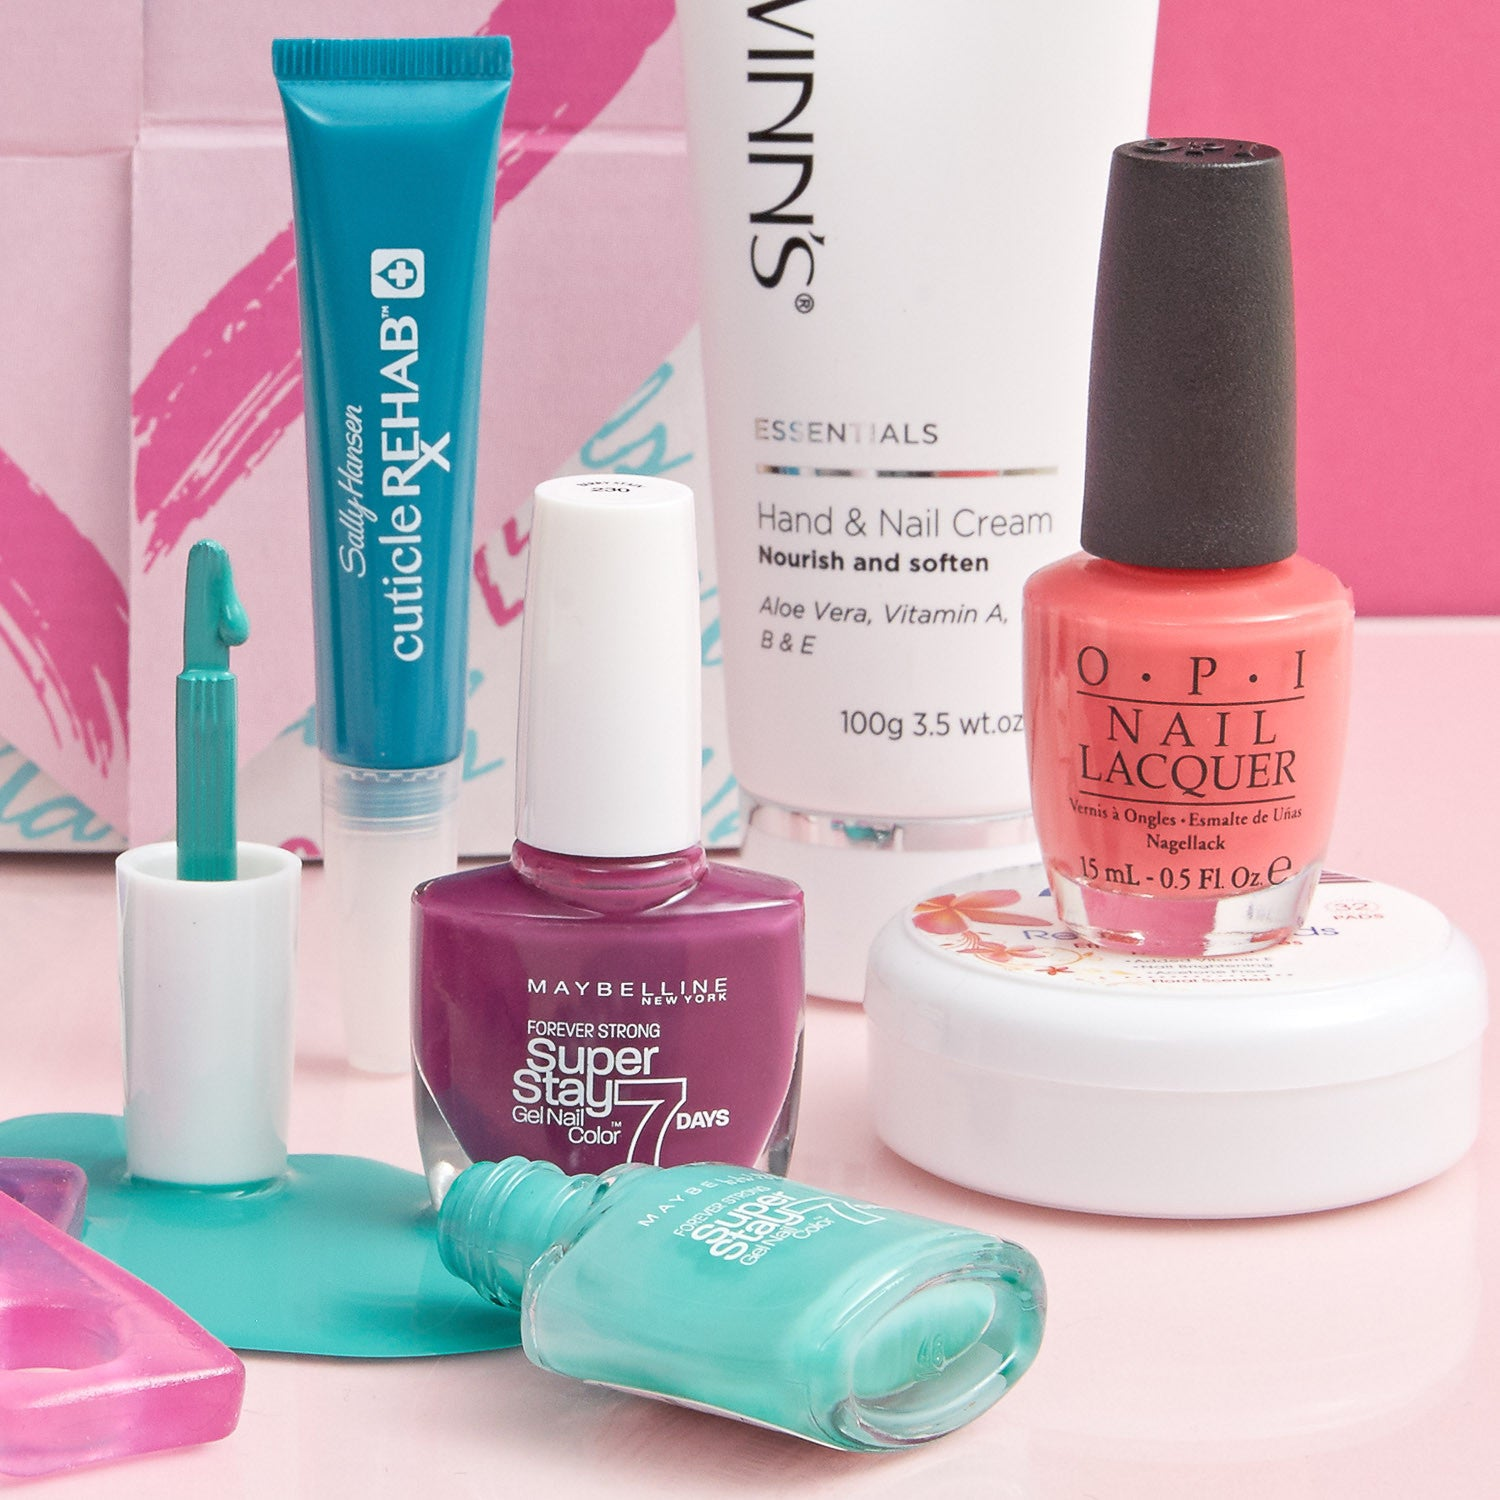 The best Nail Beauty Box ever! - Best Beauty Box Ever